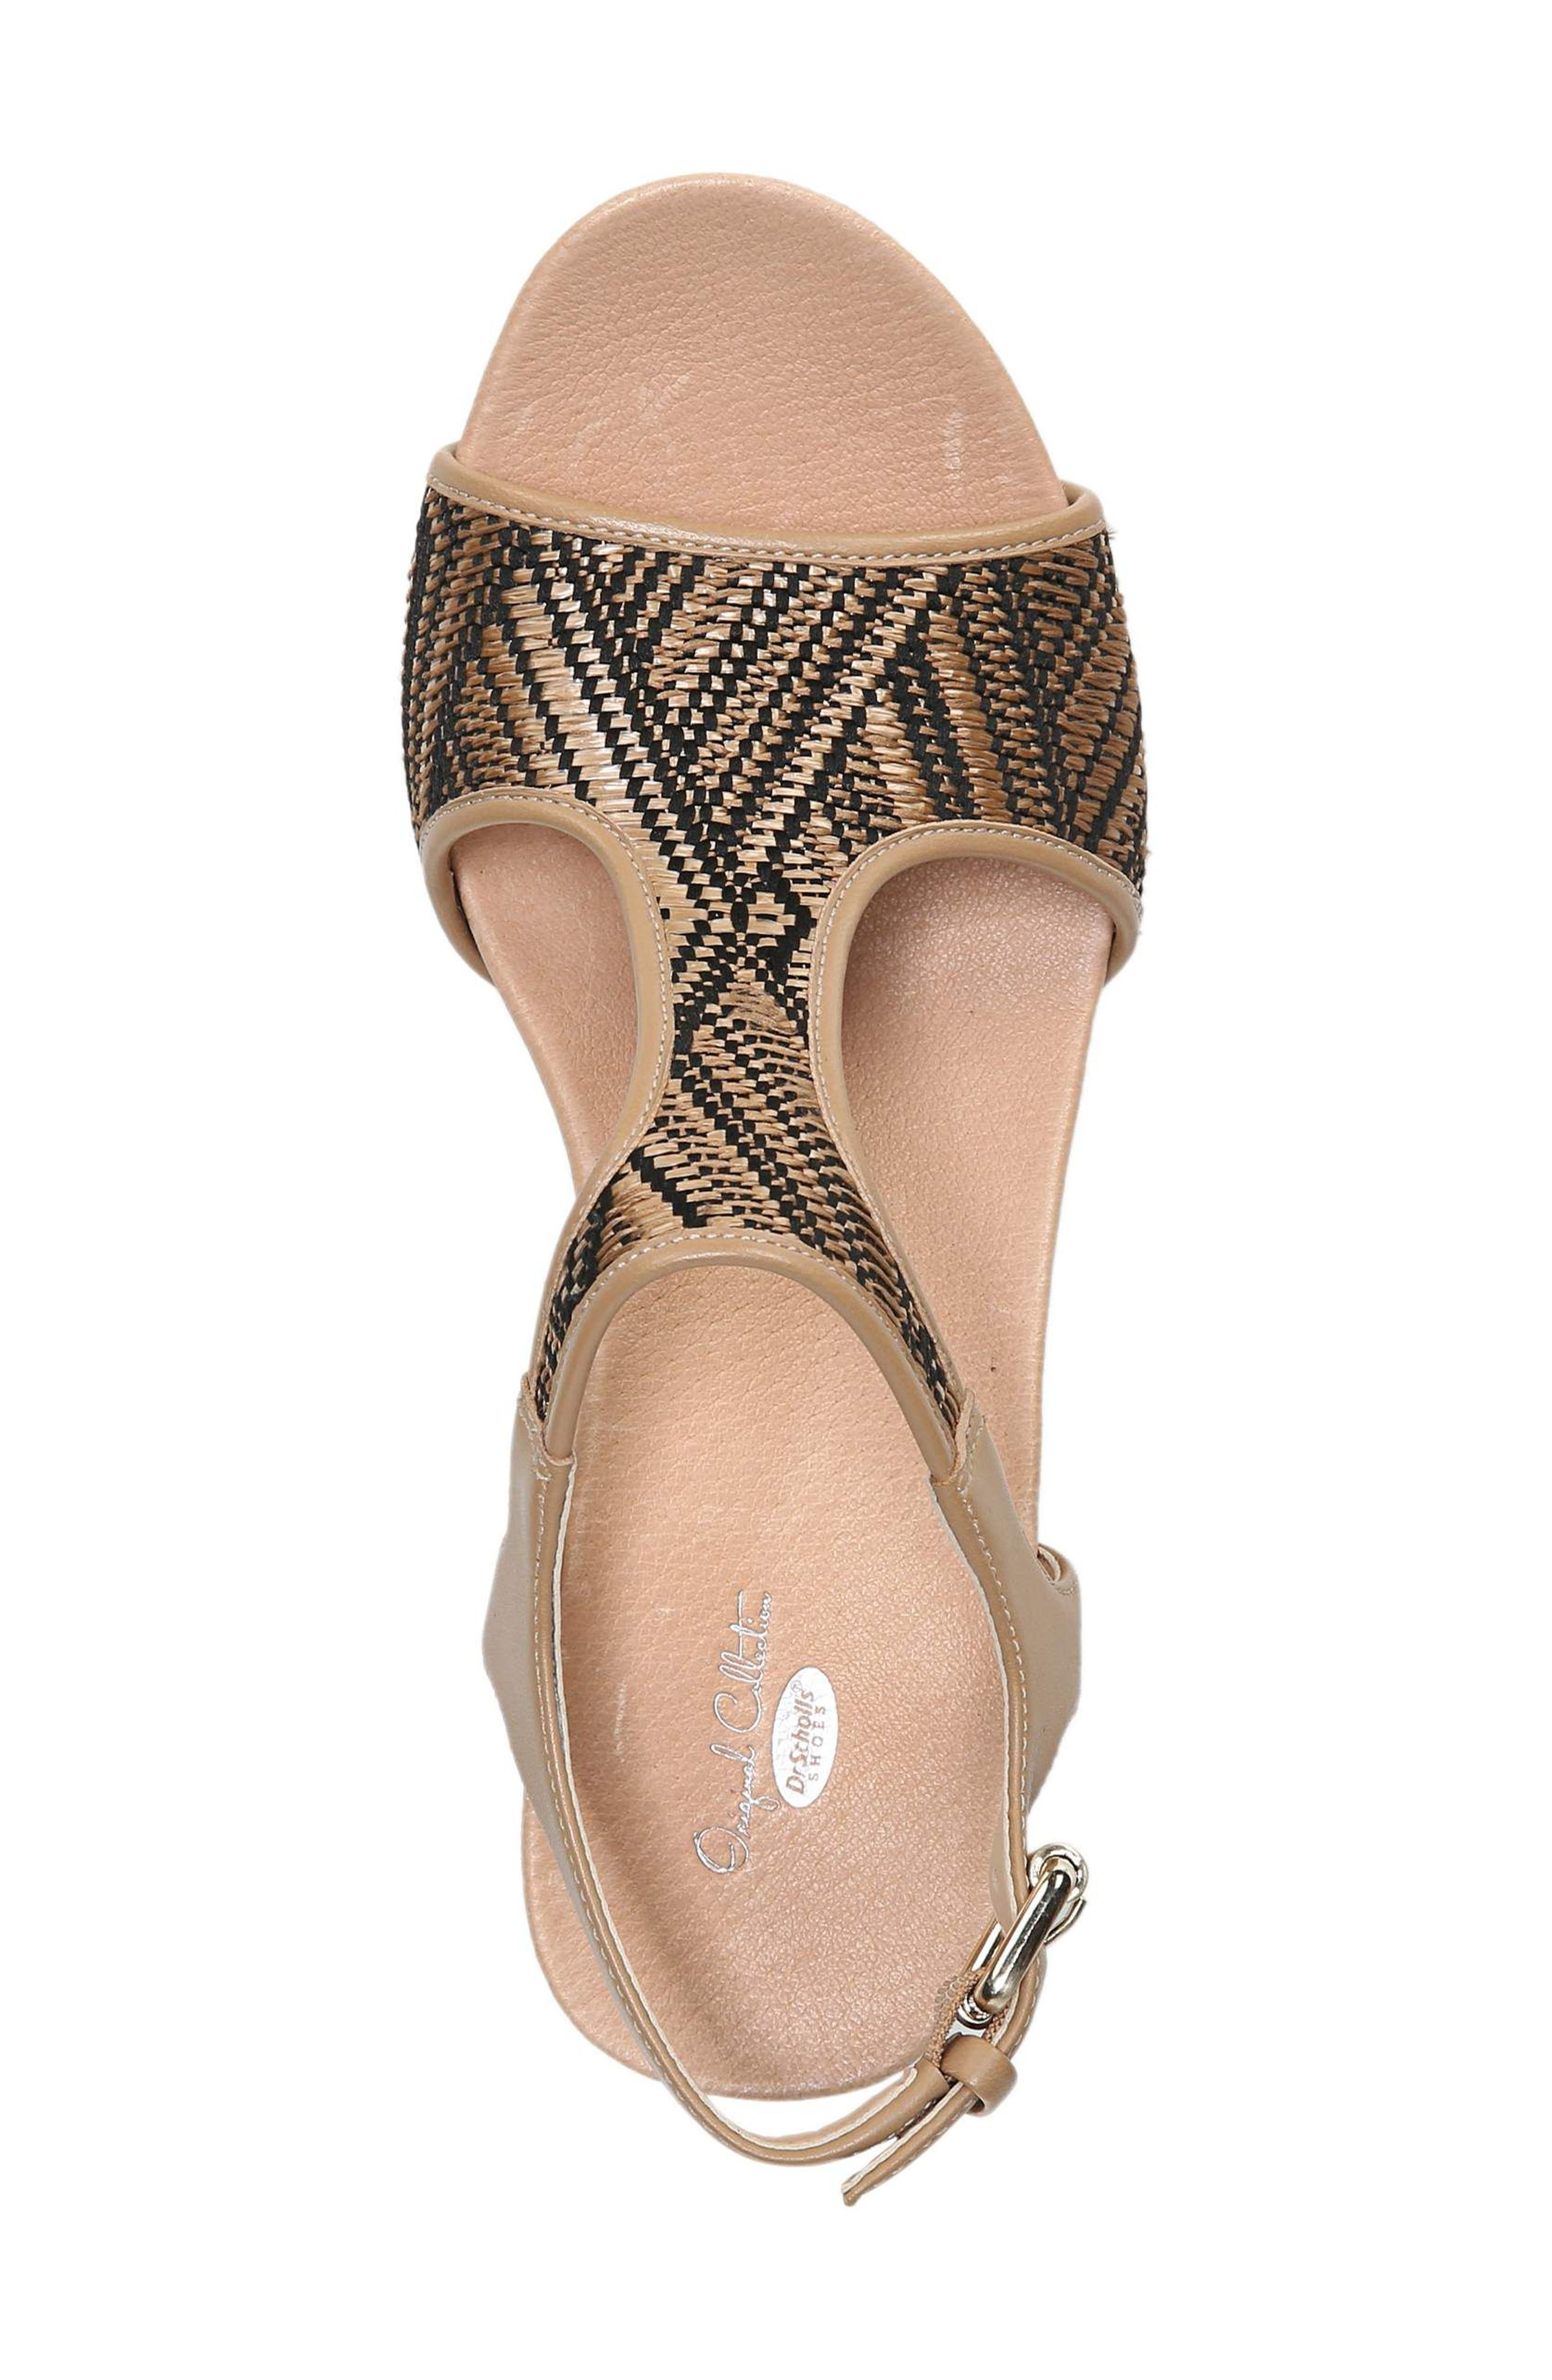 'Original Collection Wiley' Wedge Sandal,                             Alternate thumbnail 5, color,                             NUDE